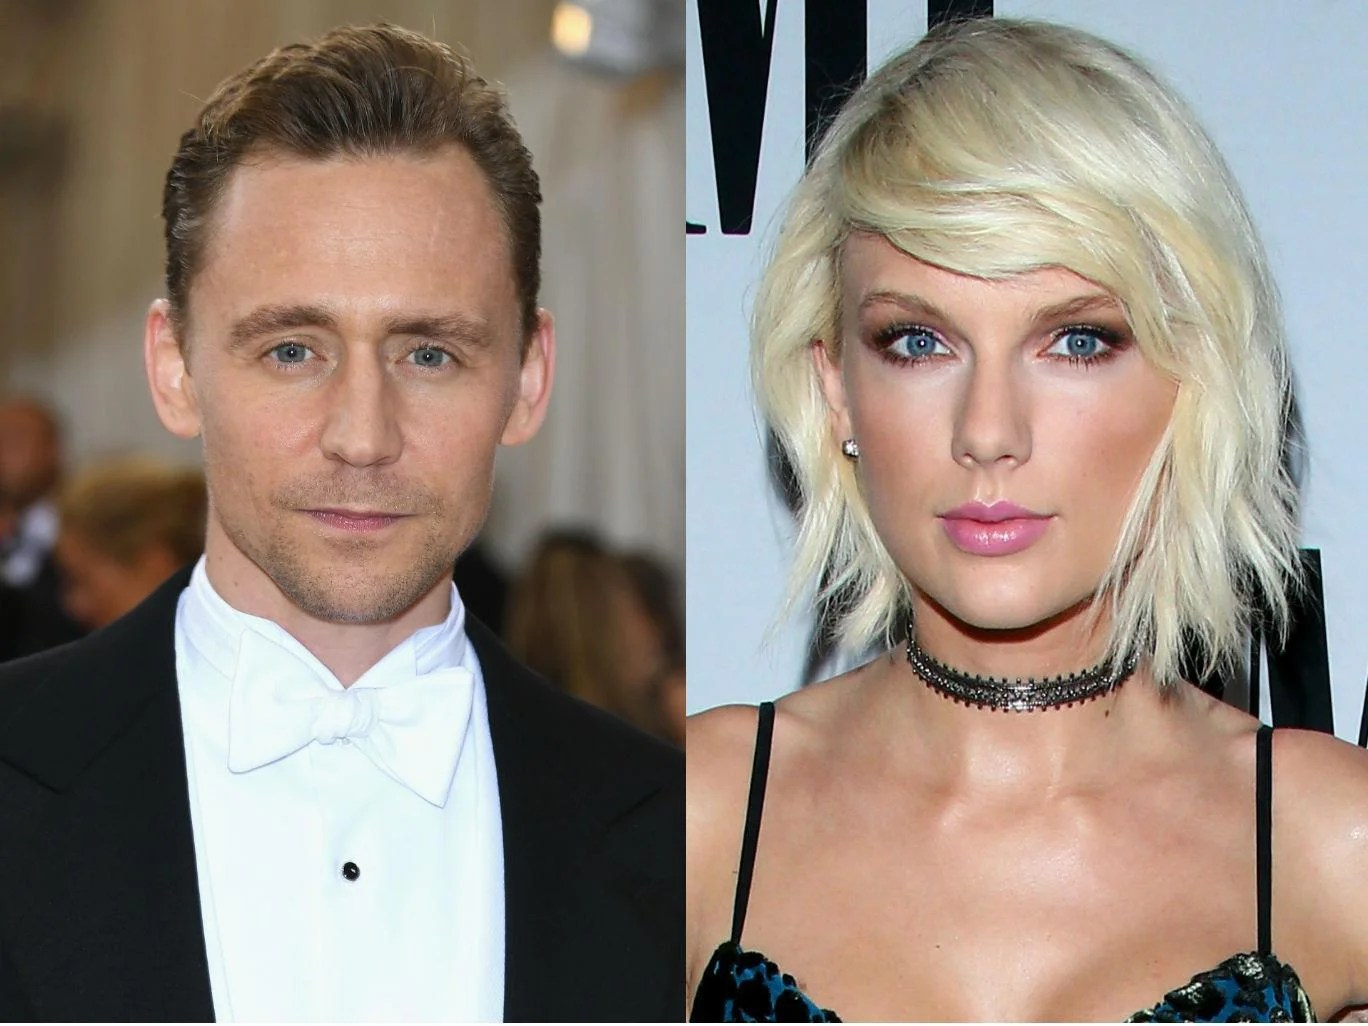 Www Tom Taylor De Tom Hiddleston Explains Why He Wore That I Love Taylor Swift